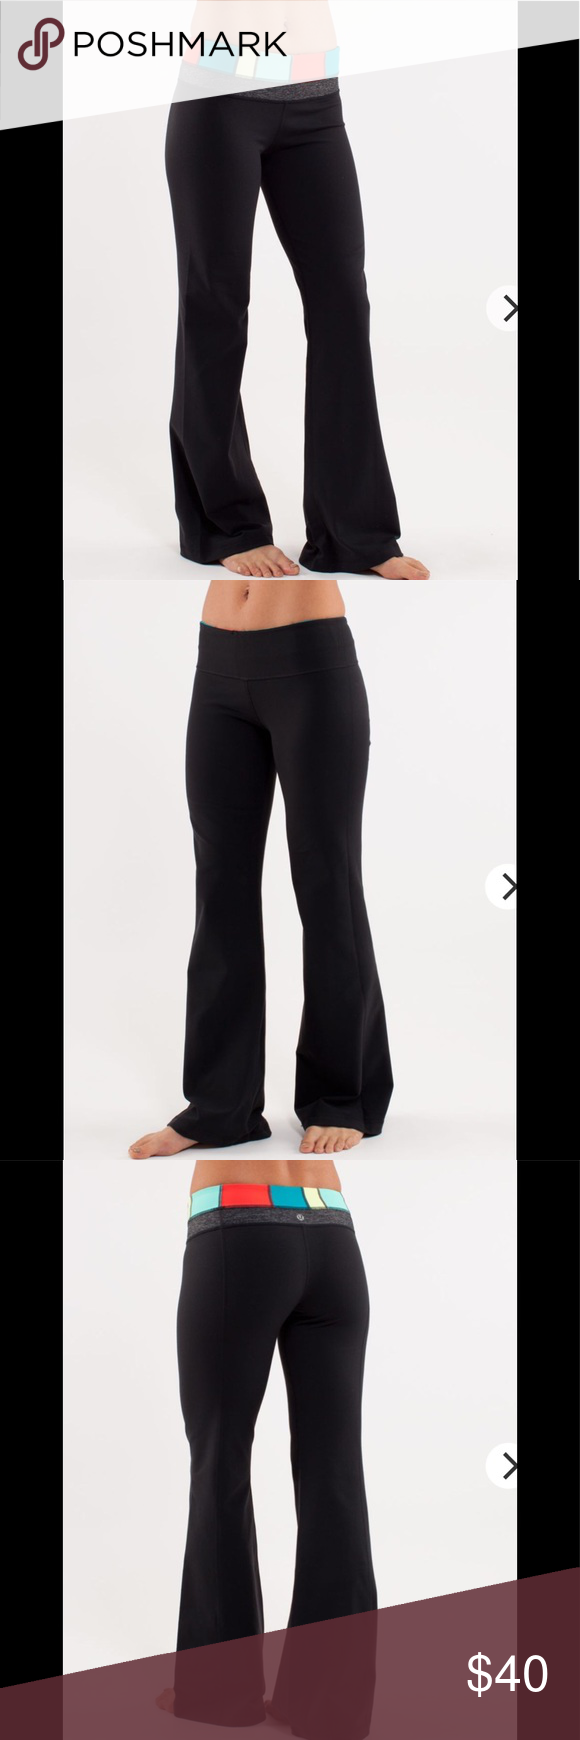 17471a1ac 🎄SALE🎄Lululemon Groove Reversible Yoga Pants Thanksgiving Sale Lululemon  Reversible Groove Black with multi